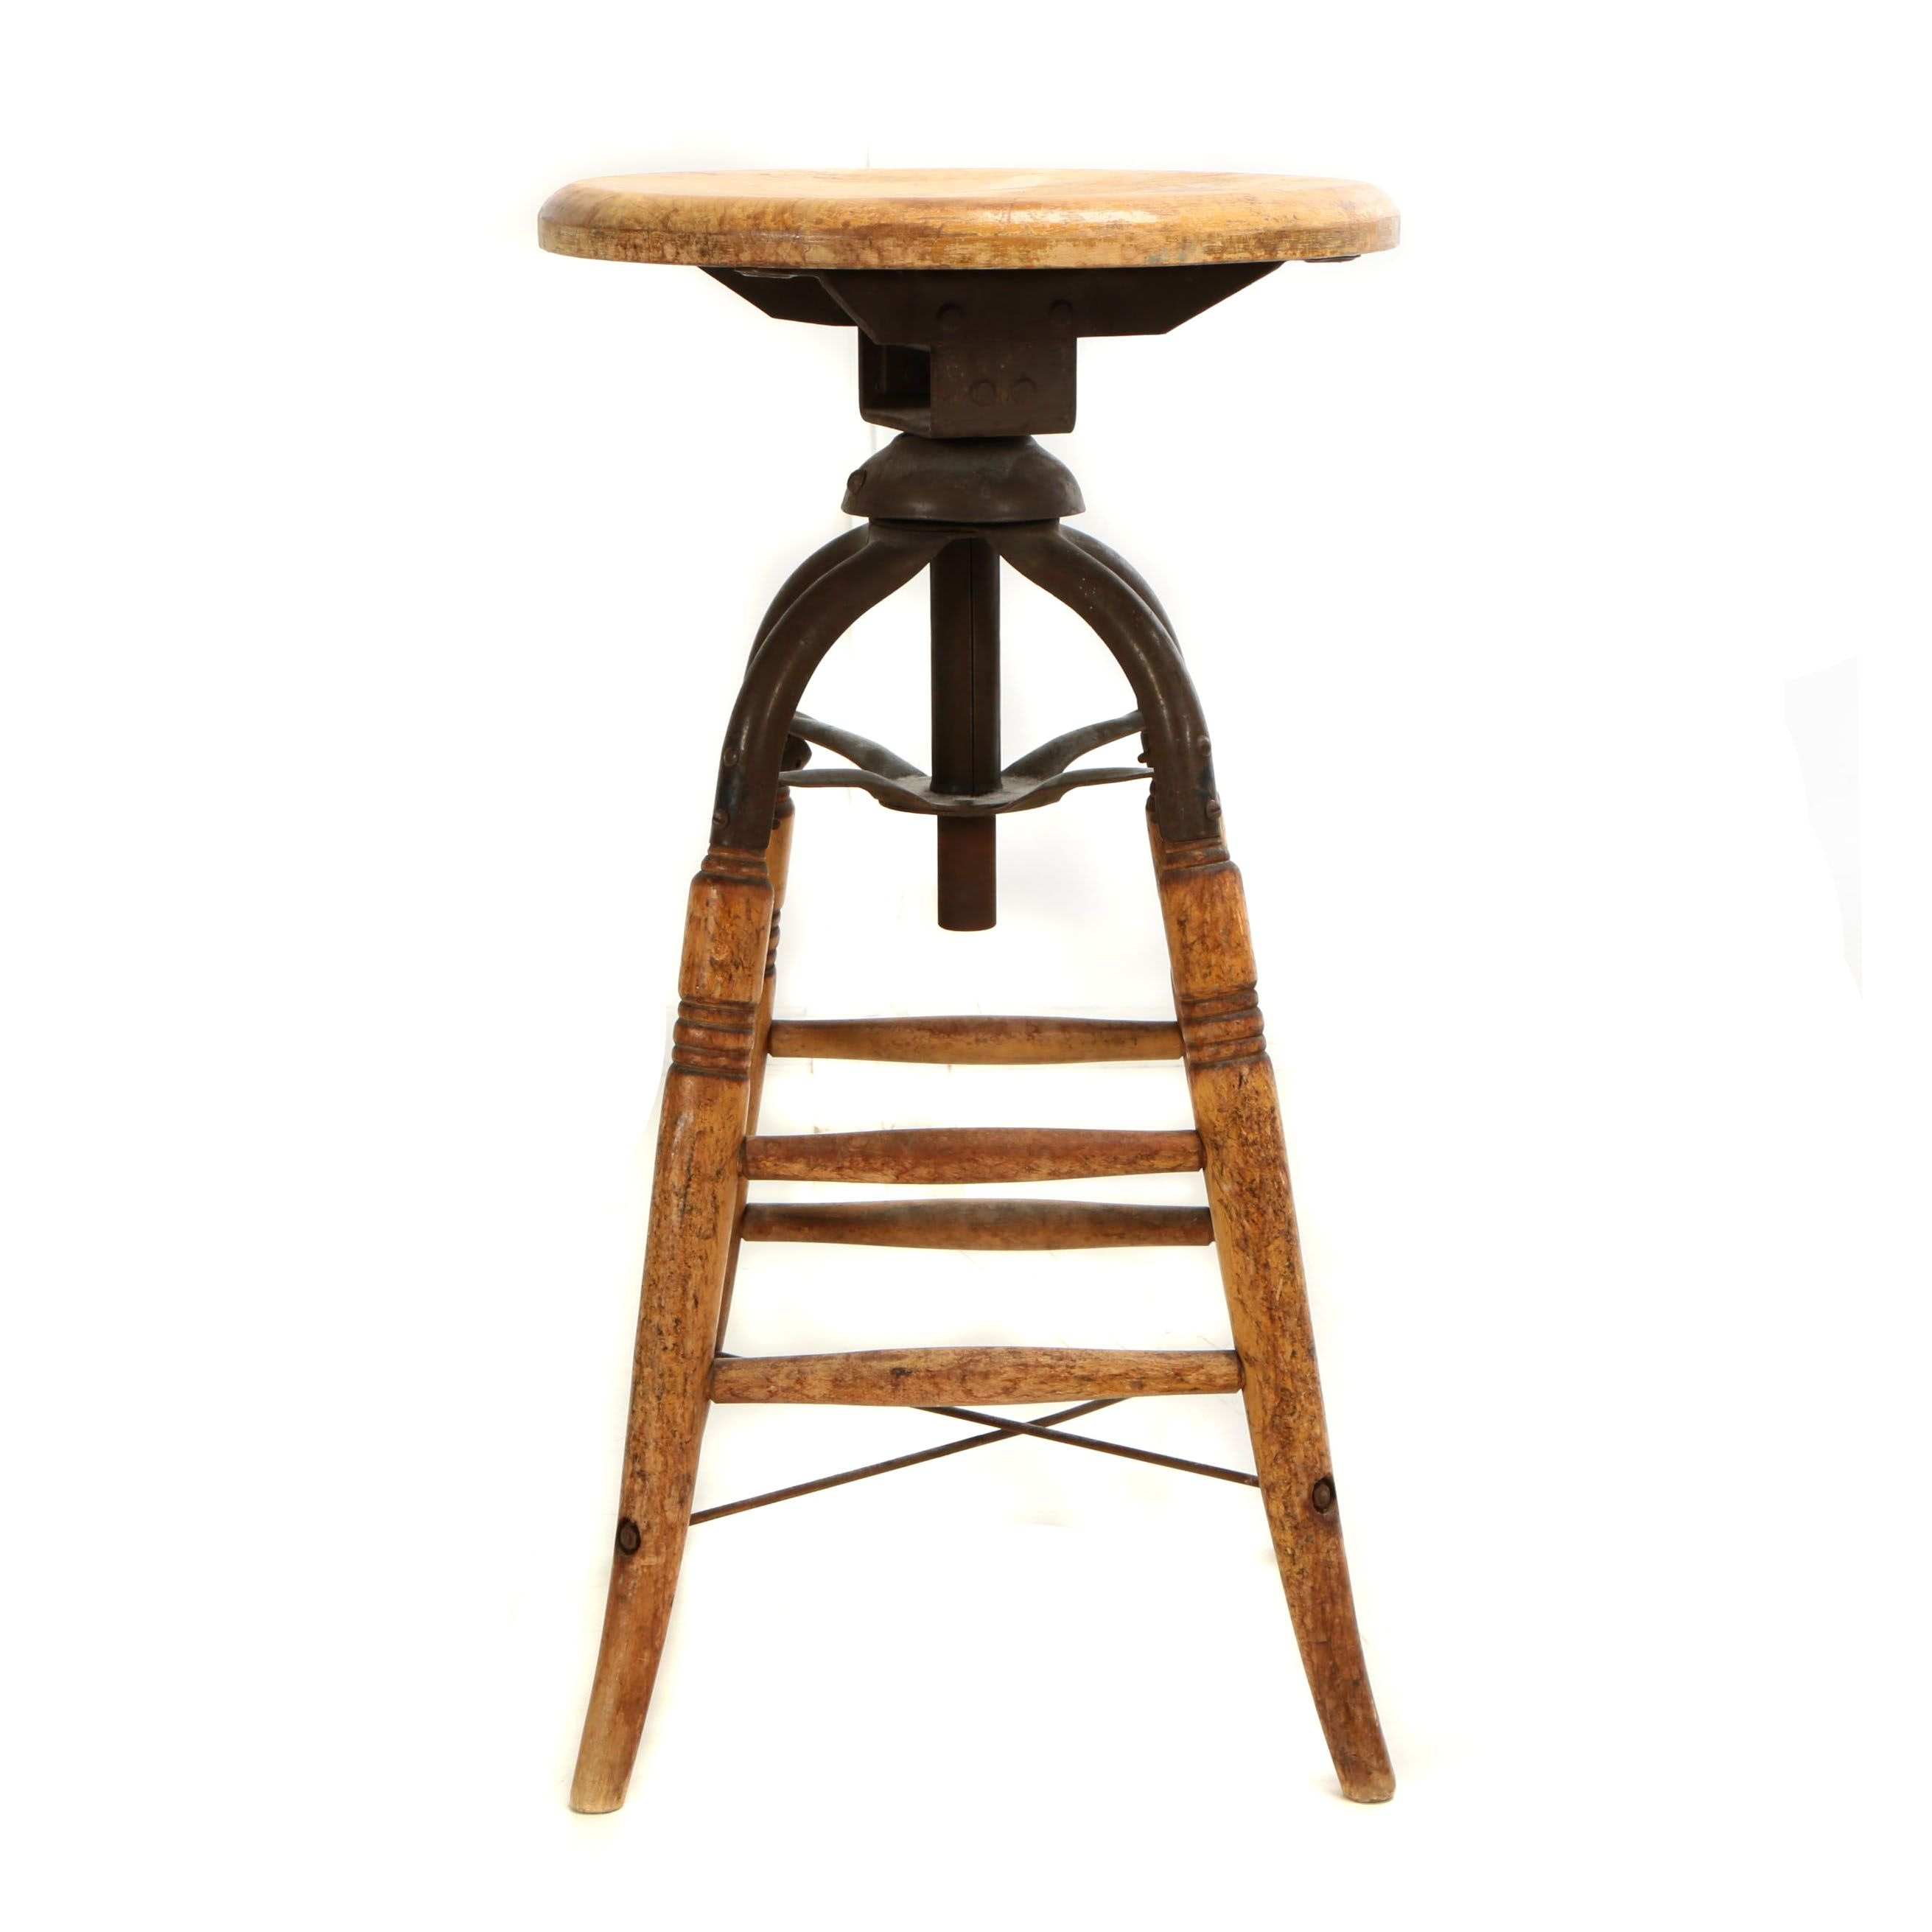 Industrial Wood and Iron Swivel Stool, Early 20th Century